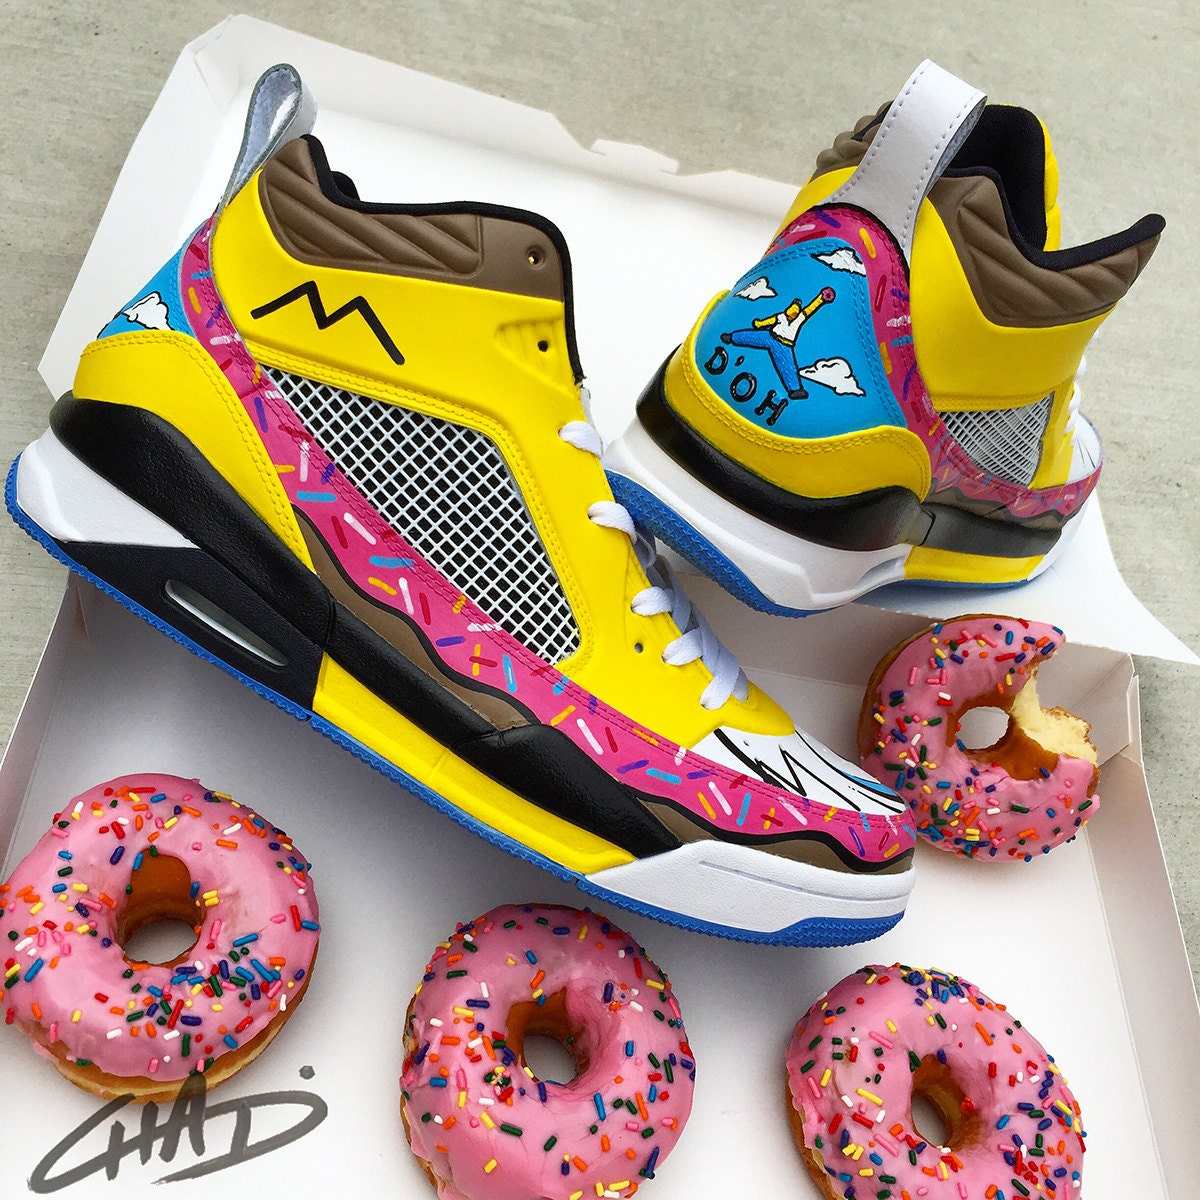 Homer Simpson Nike Shoes